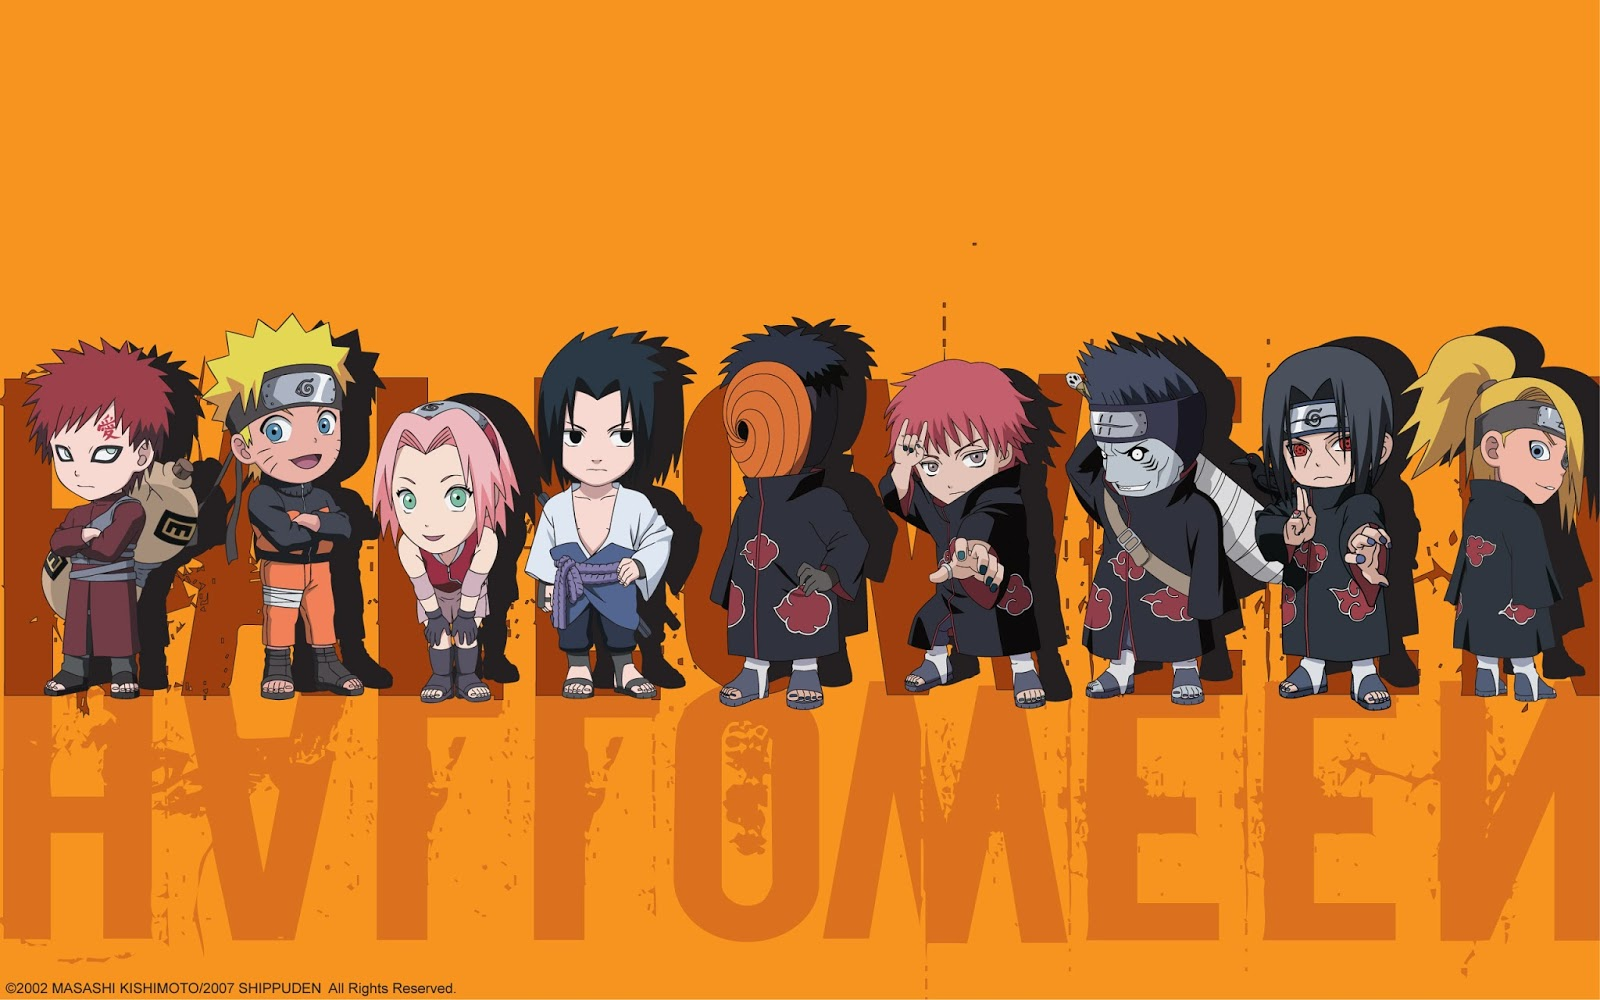 Fantastic Wallpaper Naruto Cute - Cute+Funny+Naruto+Shippuden+anime+hd+desktop+wallpapers  Graphic_29049.jpg